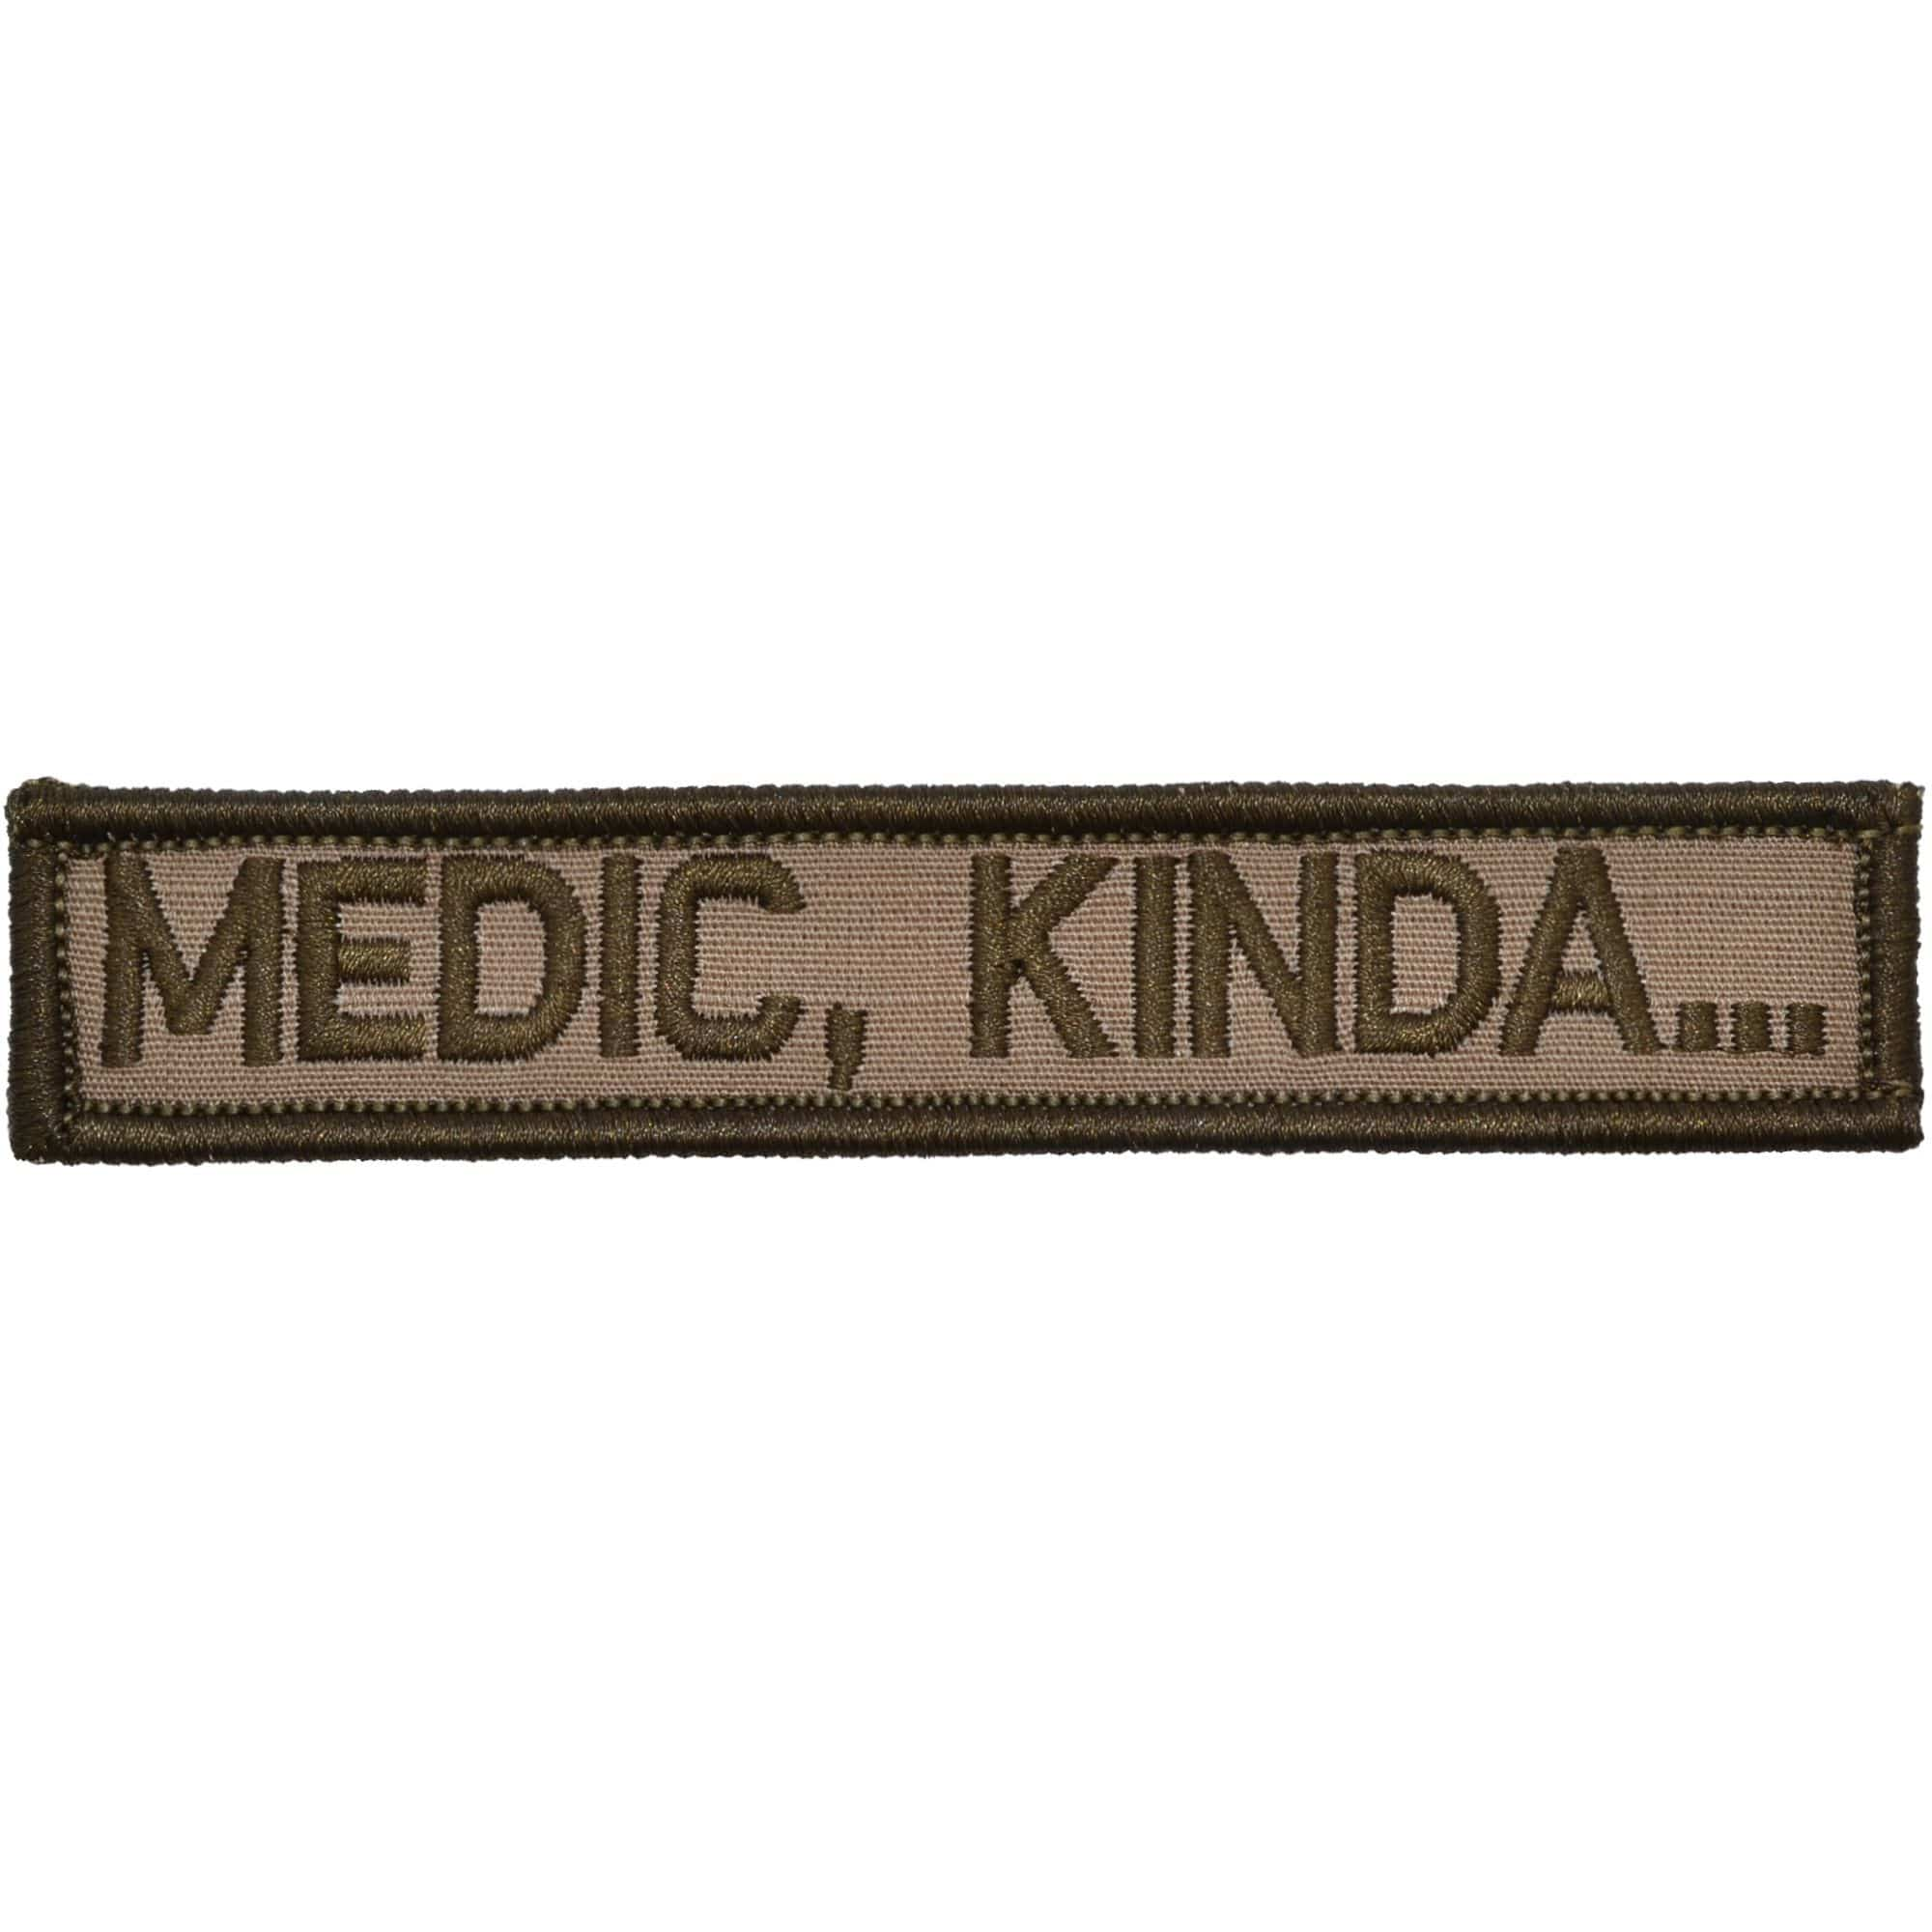 Tactical Gear Junkie Patches Coyote Brown Medic, Kinda... - 1x5 Patch